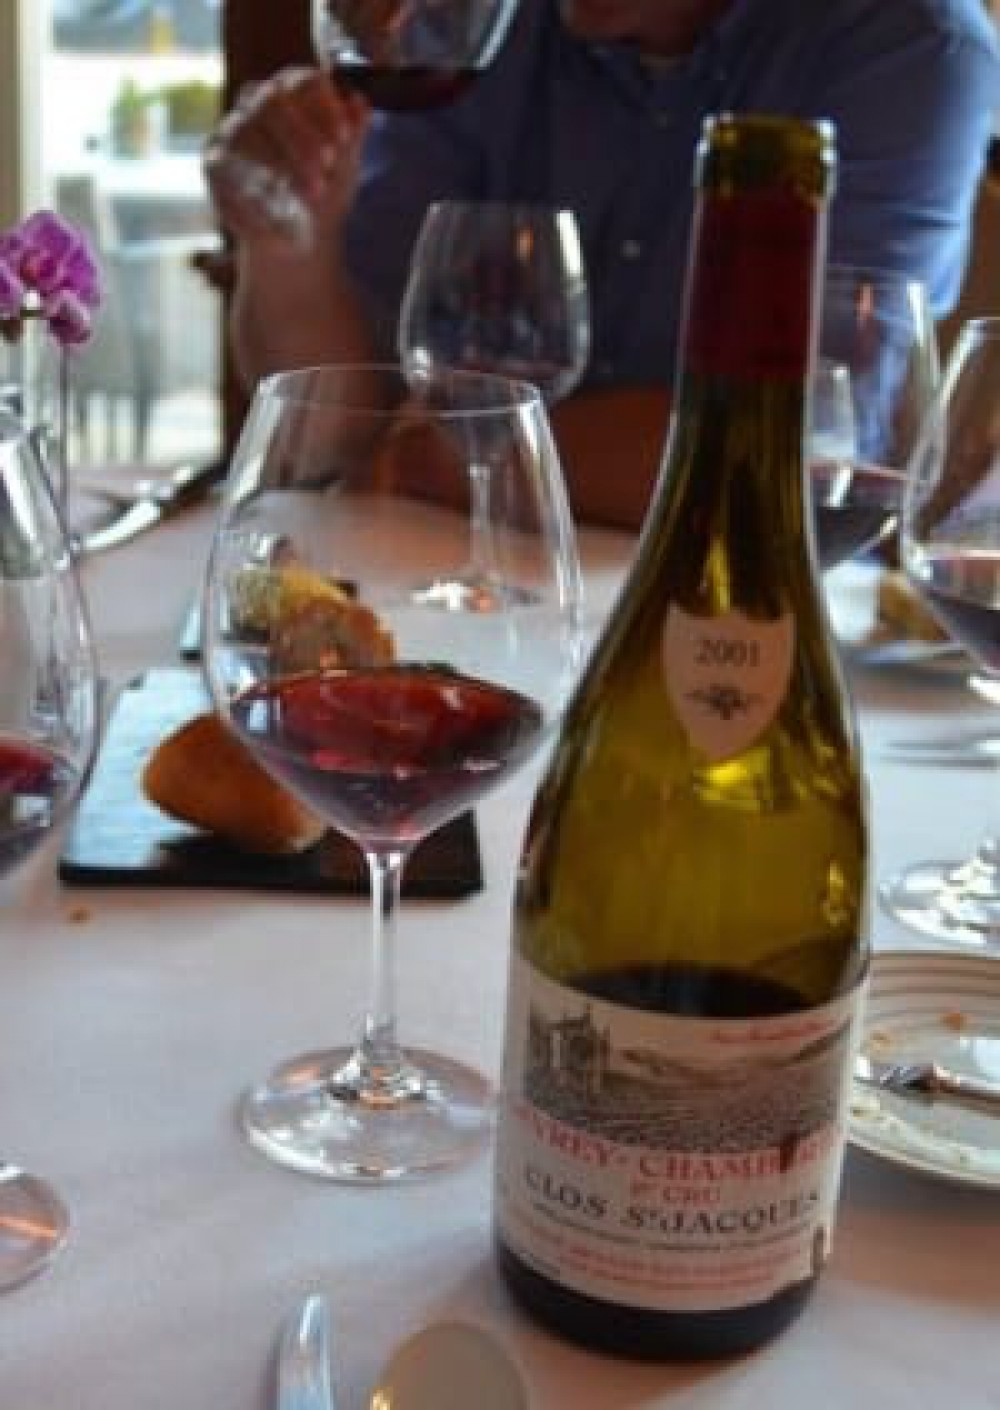 Armand Rousseau Gevrey Chambertin Clos St Jacques 2001